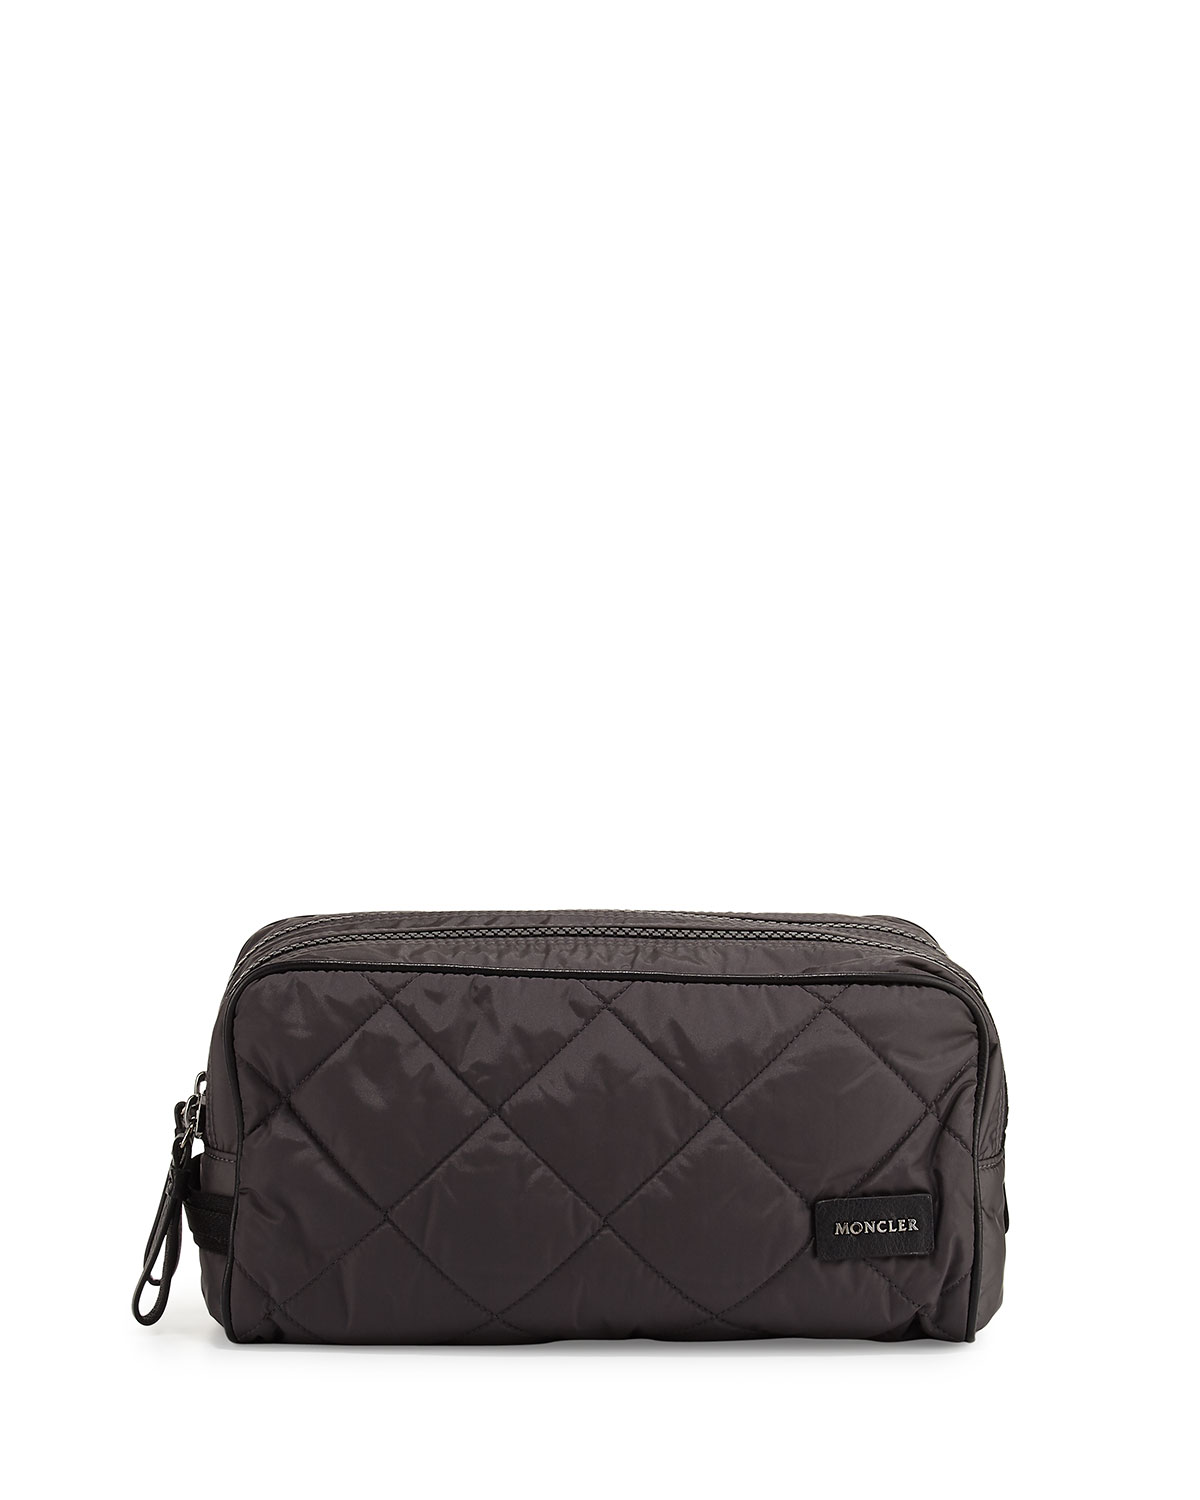 Moncler Quilted Travel Toiletry Kit  cf8843d8ac15d